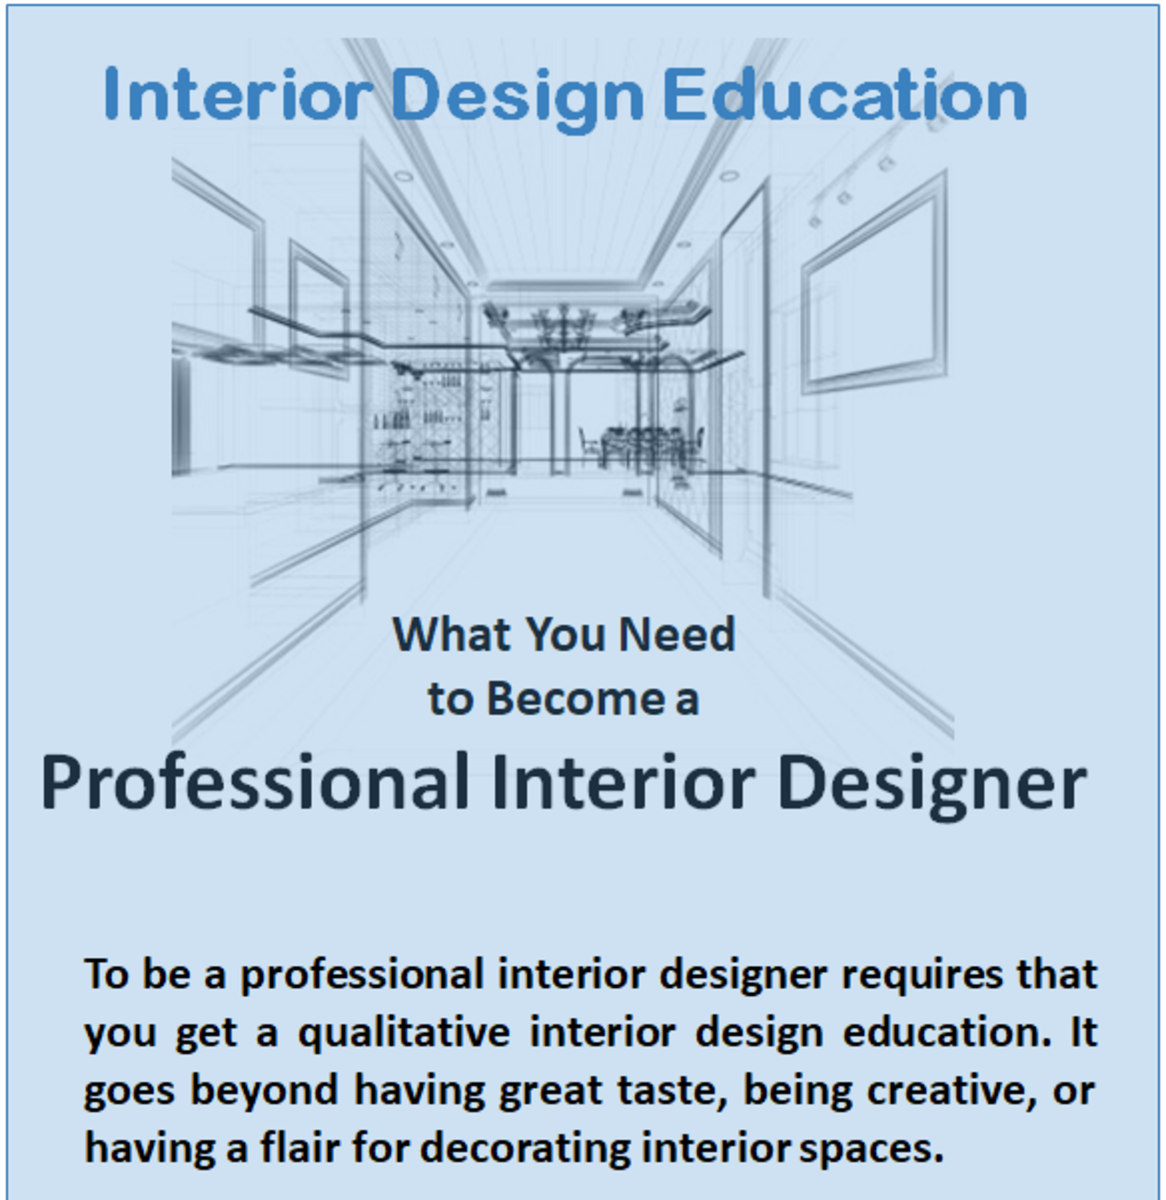 Interior Design Education: Minimum Qualifications You Need to Become a Professional